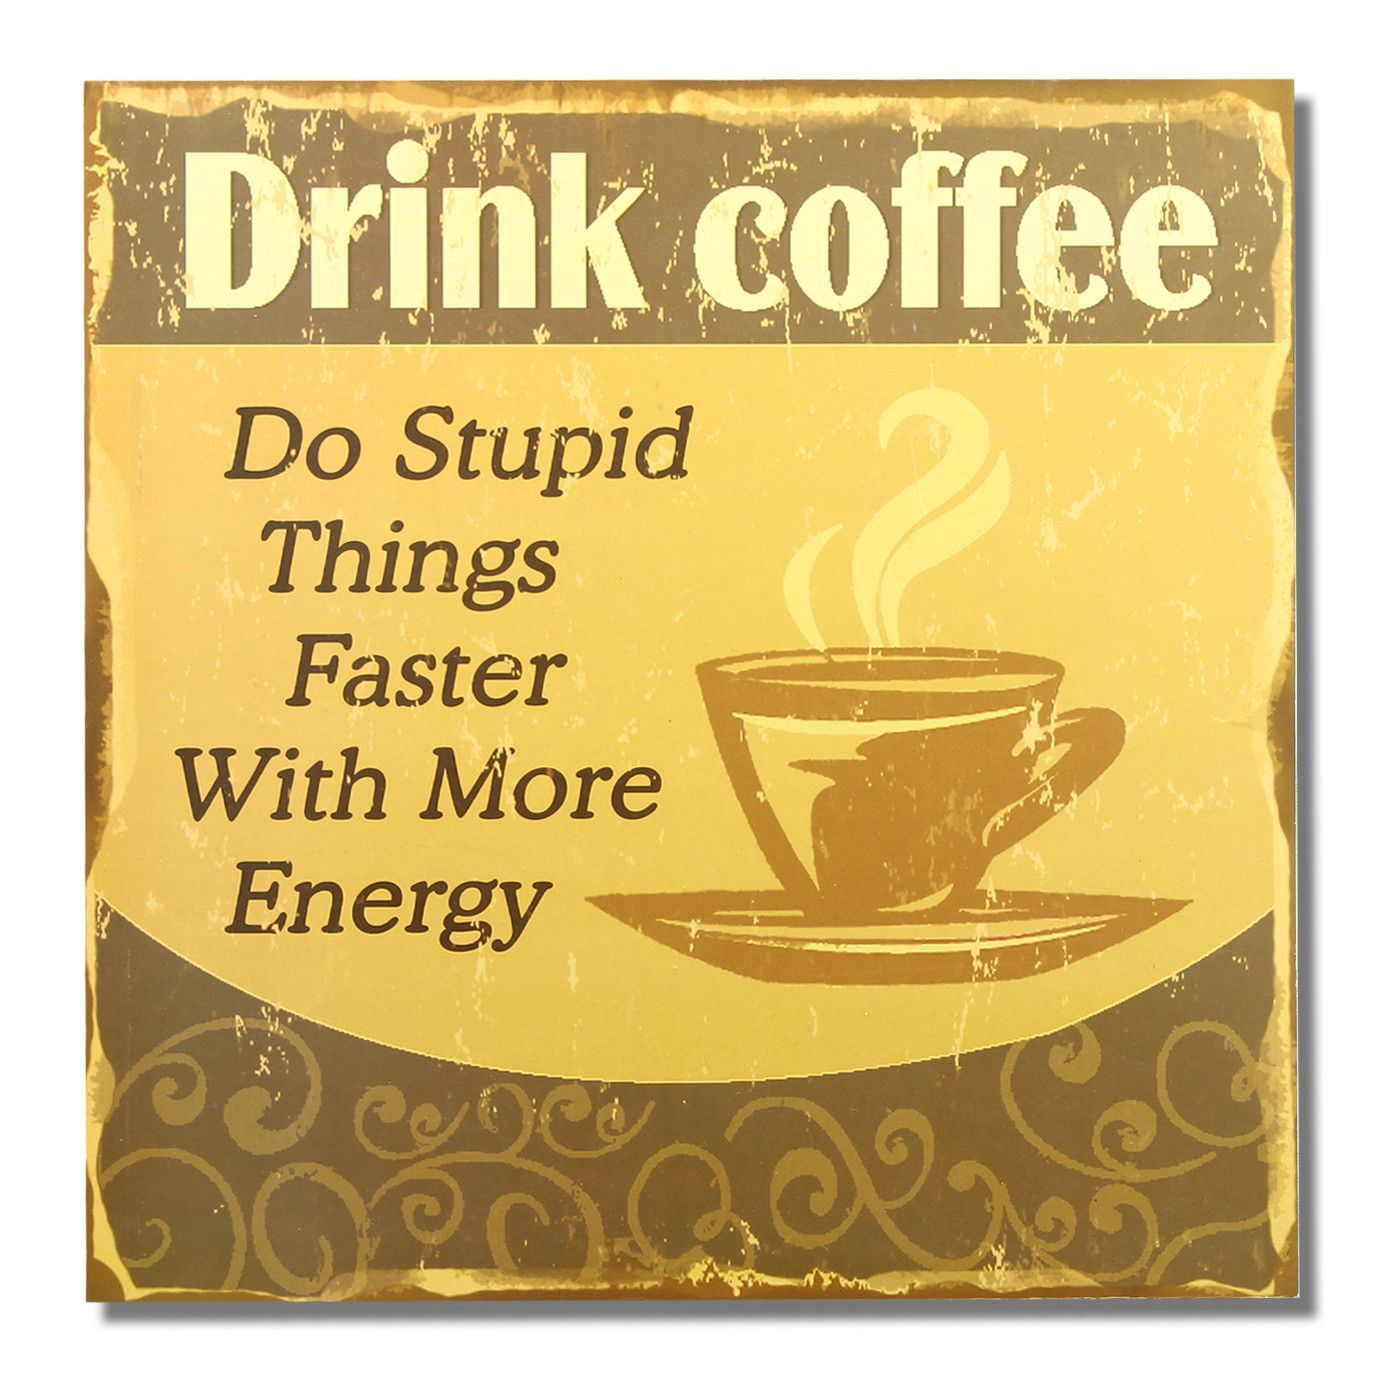 Drink Coffee Wall Décor | Products | Pinterest | Drink coffee ...